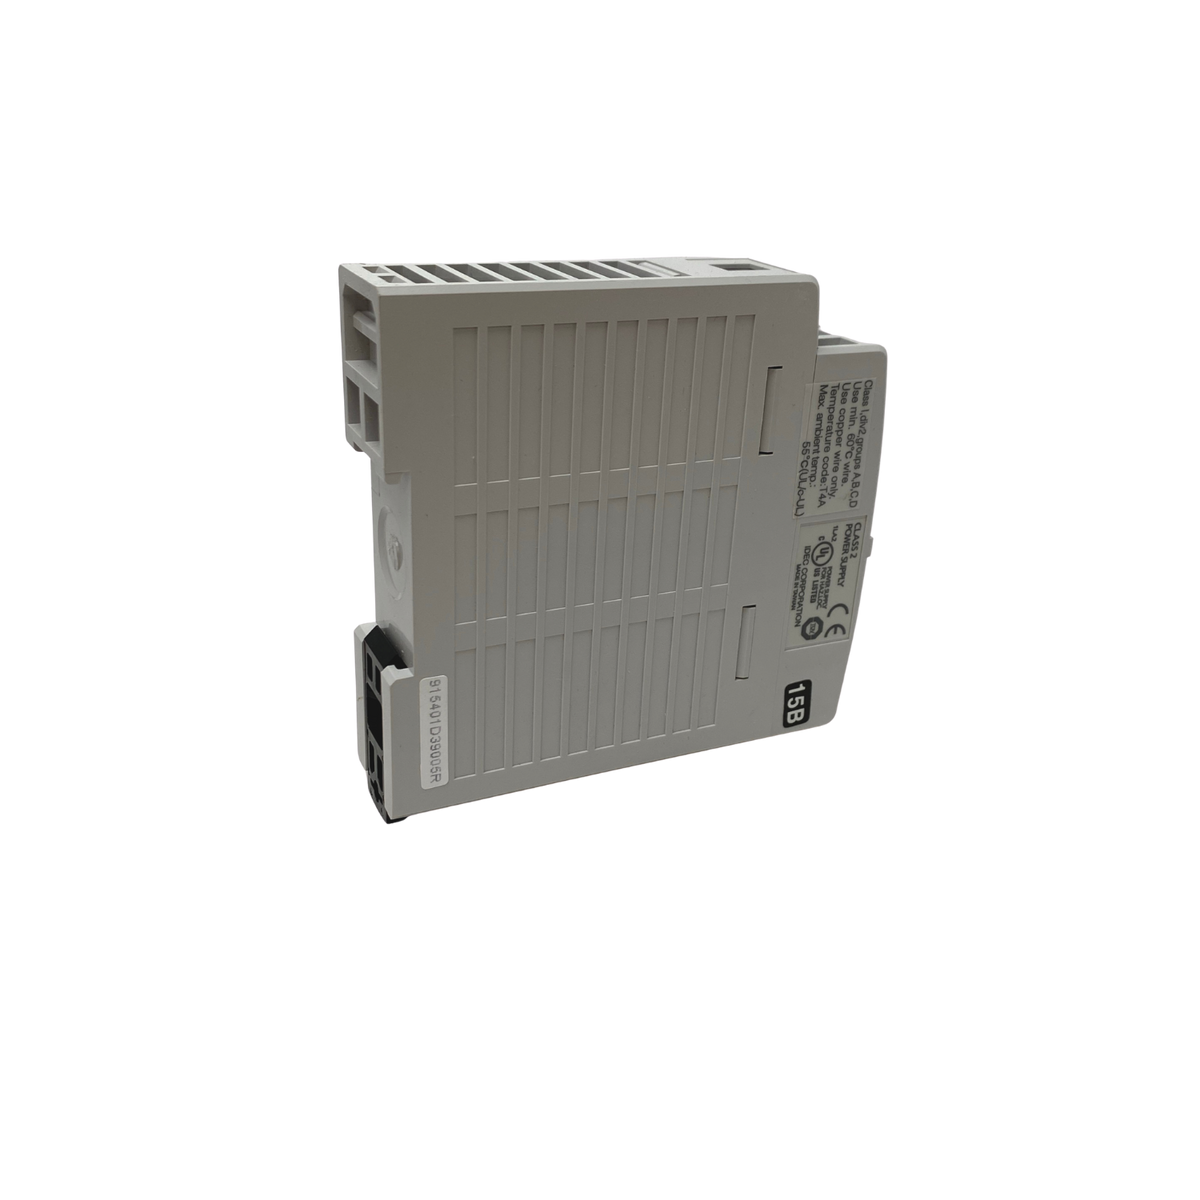 Grey plastic housing that has connection points on the front face. connect to din rail